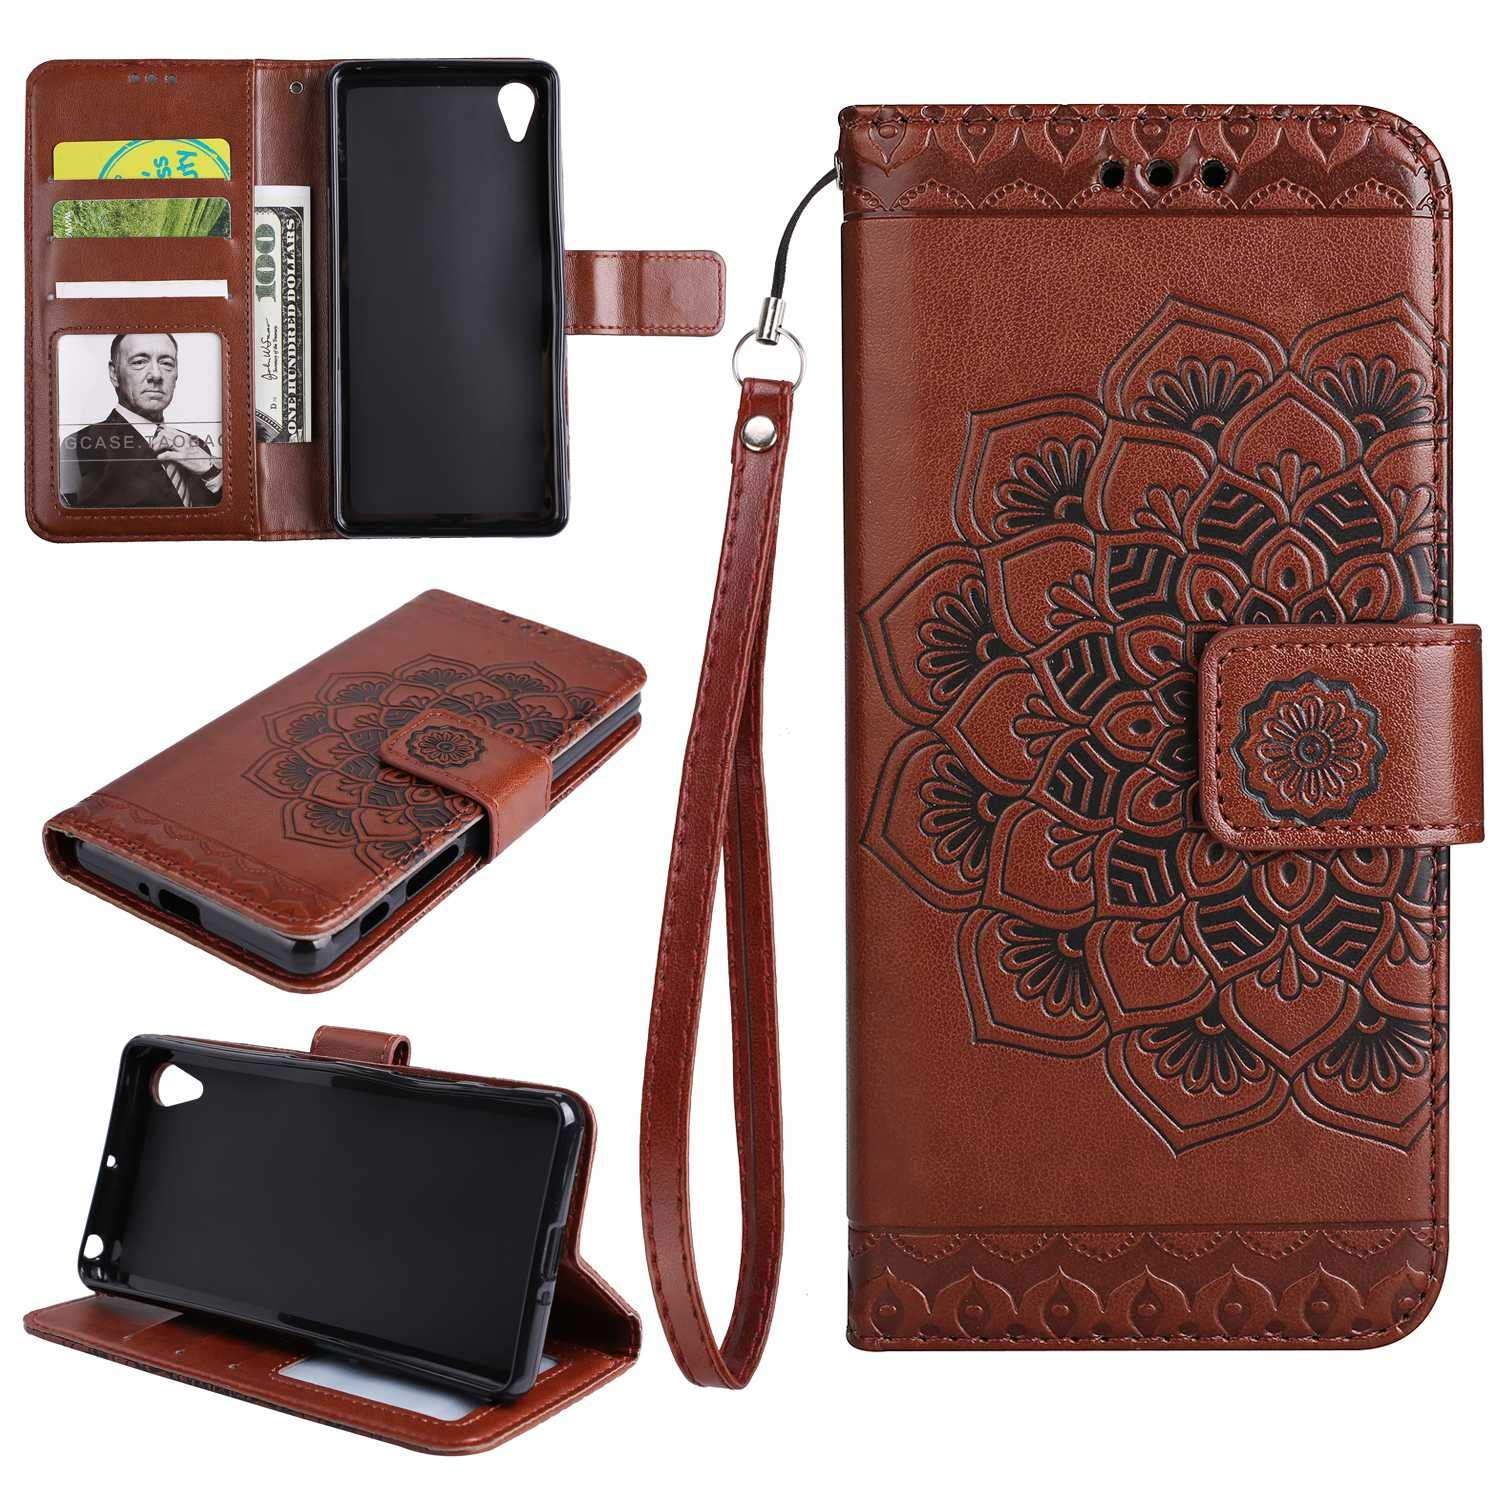 Sony Xperia XA Case The Grafu Flip Leather Wallet Cover Card Slot Holder with Kickstand and Metal Magnetic Closure for Sony Xperia XA Purple